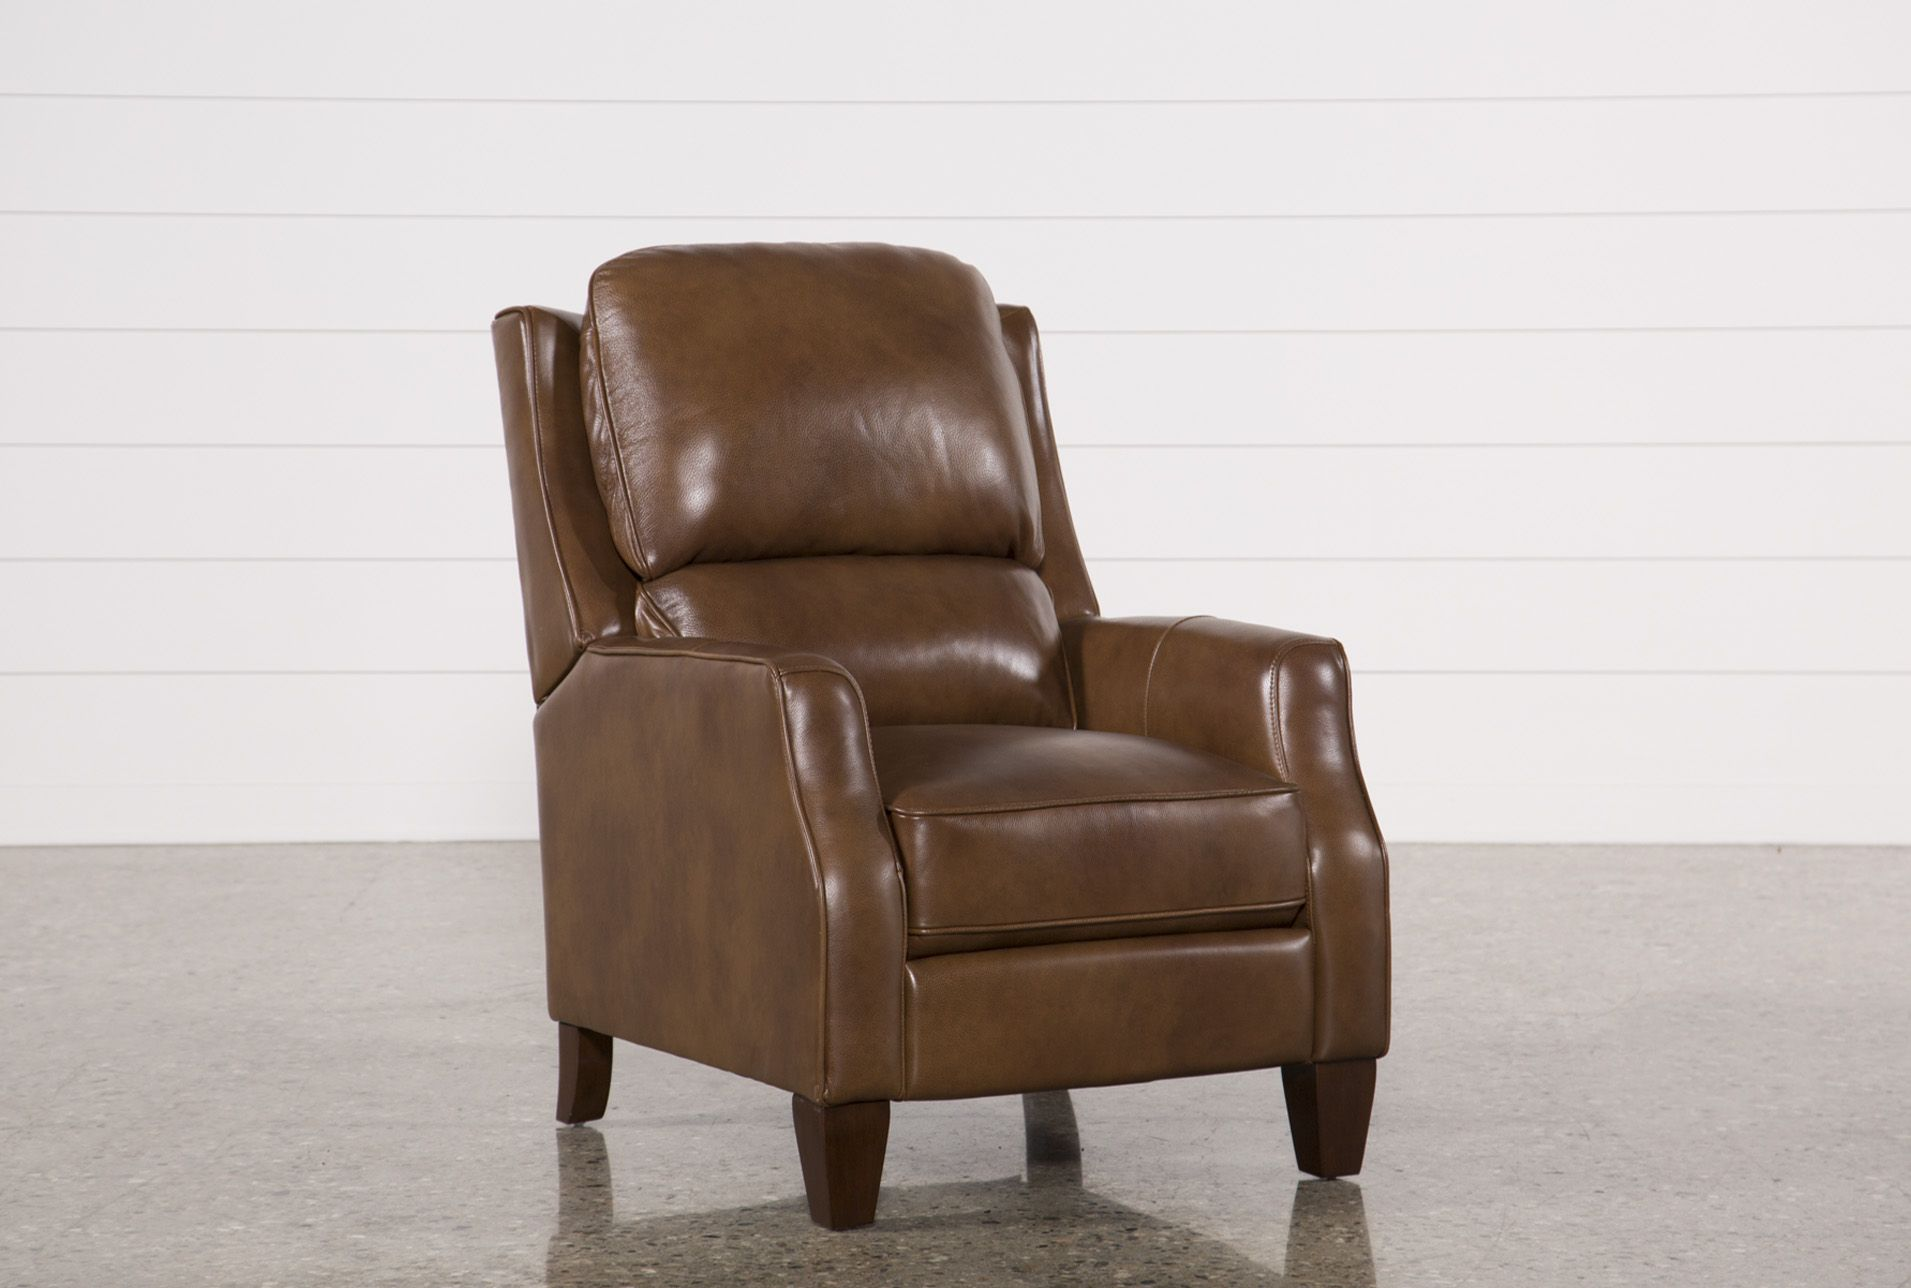 Astonishing Douglas Caramel Leather High Leg Recliner In 2019 Products Caraccident5 Cool Chair Designs And Ideas Caraccident5Info